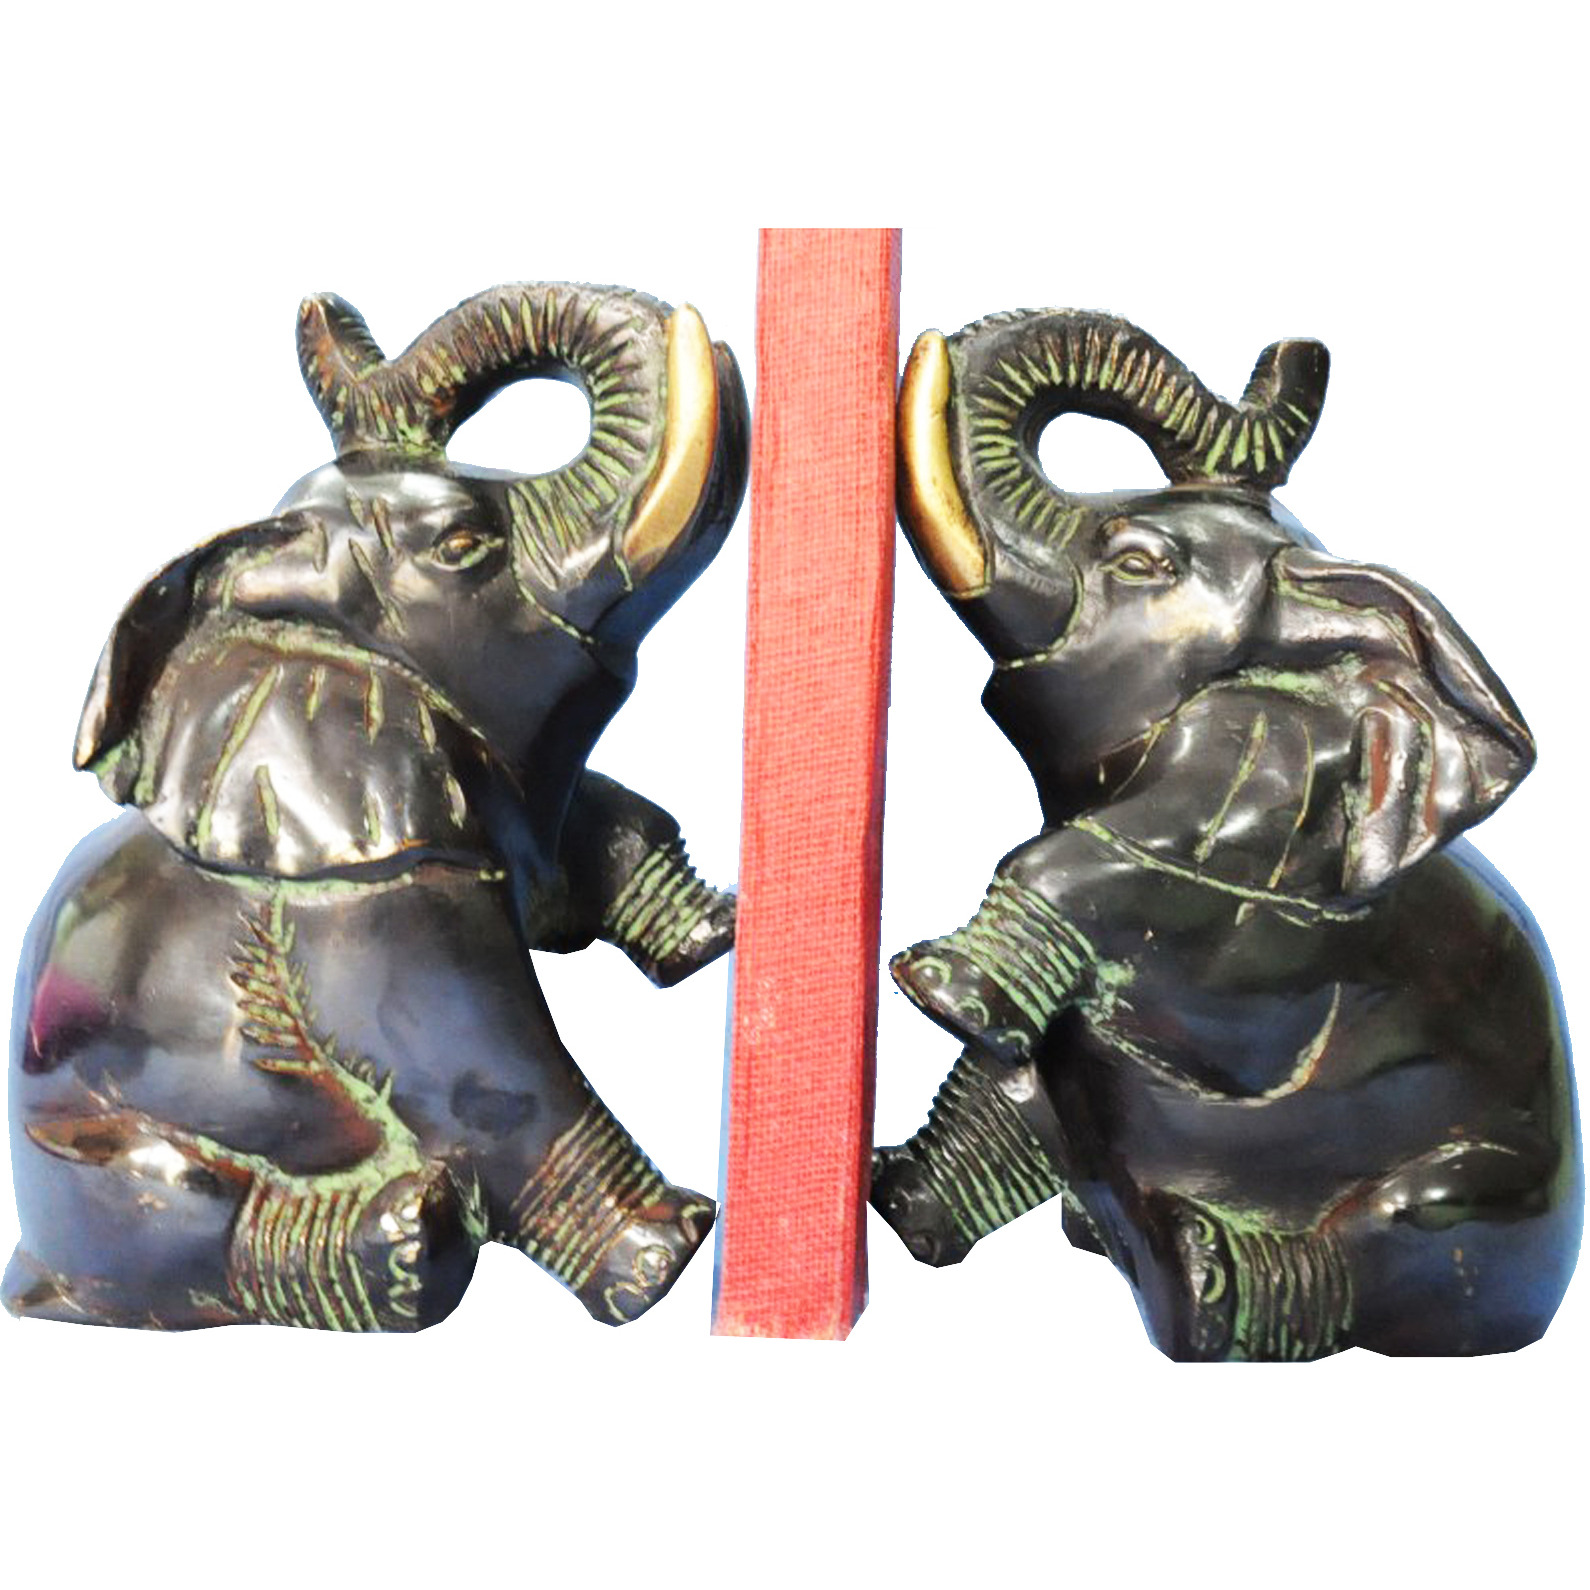 Book End 0f Elephant Brass Sculpture In Antique Finish